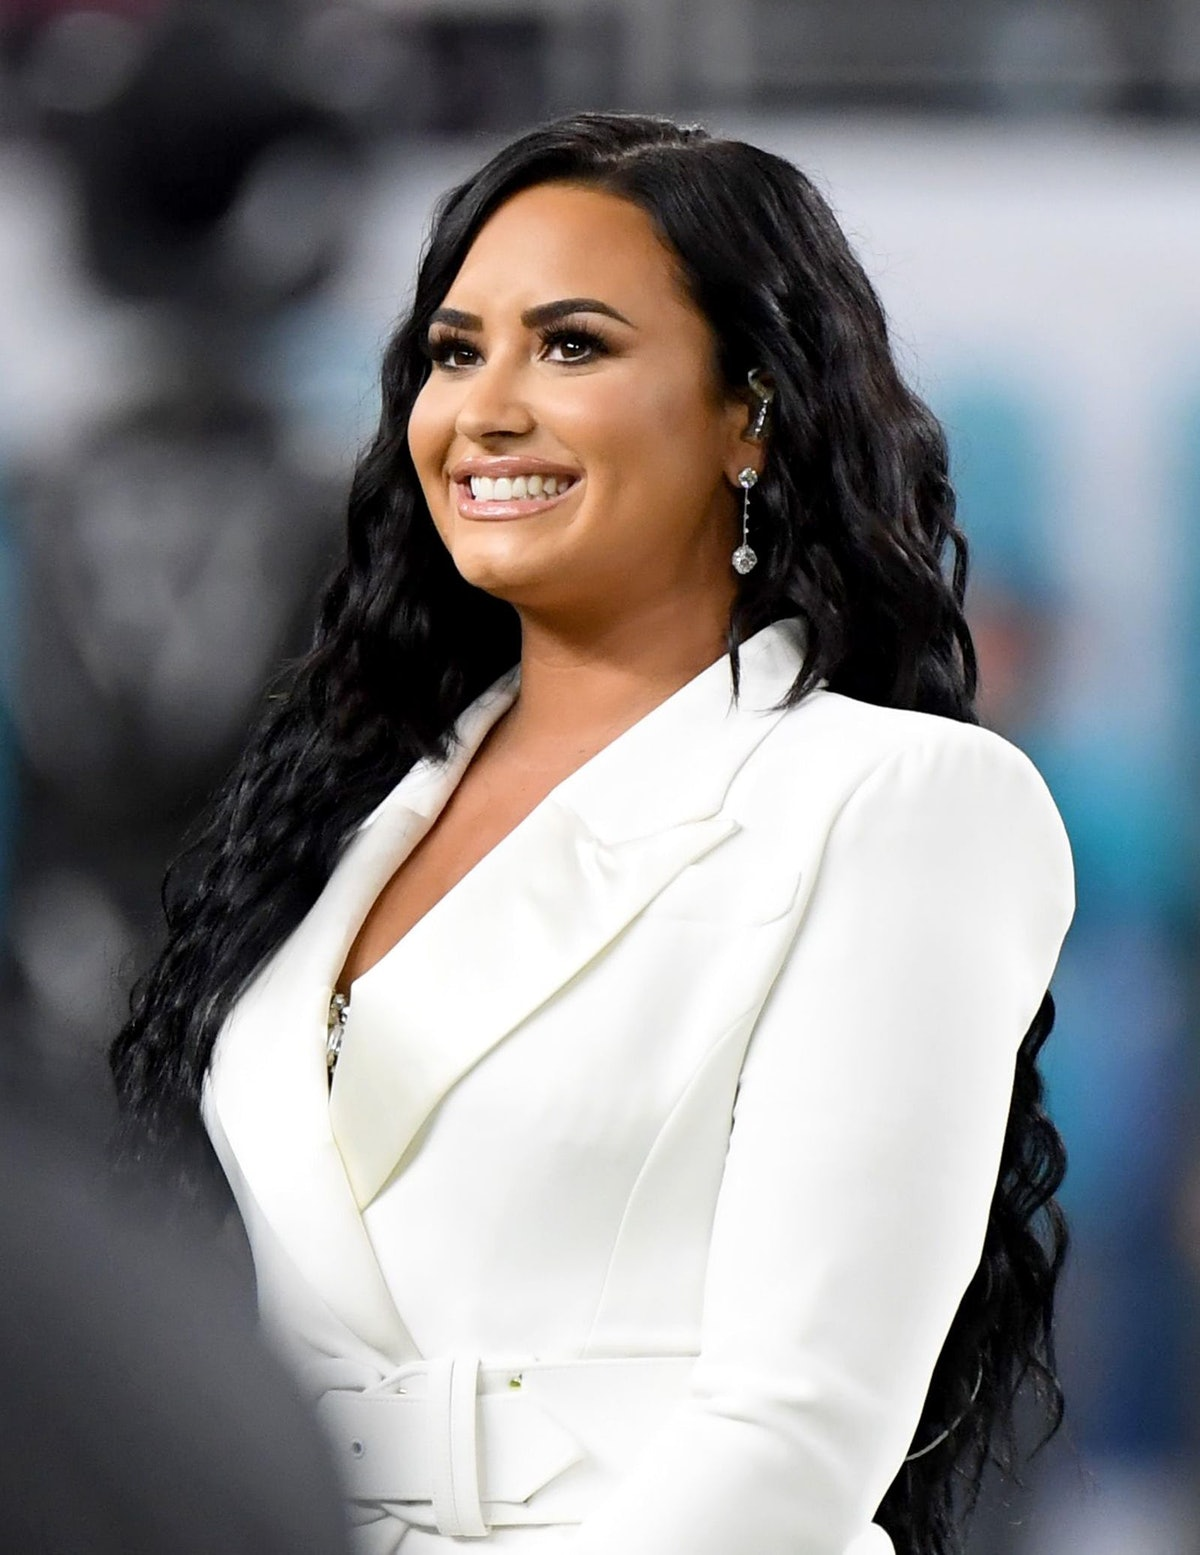 Demi Lovato will open up about her 2018 overdose and her journey towards sobriety in 'Demi Lovato: Dancing With the Devil'